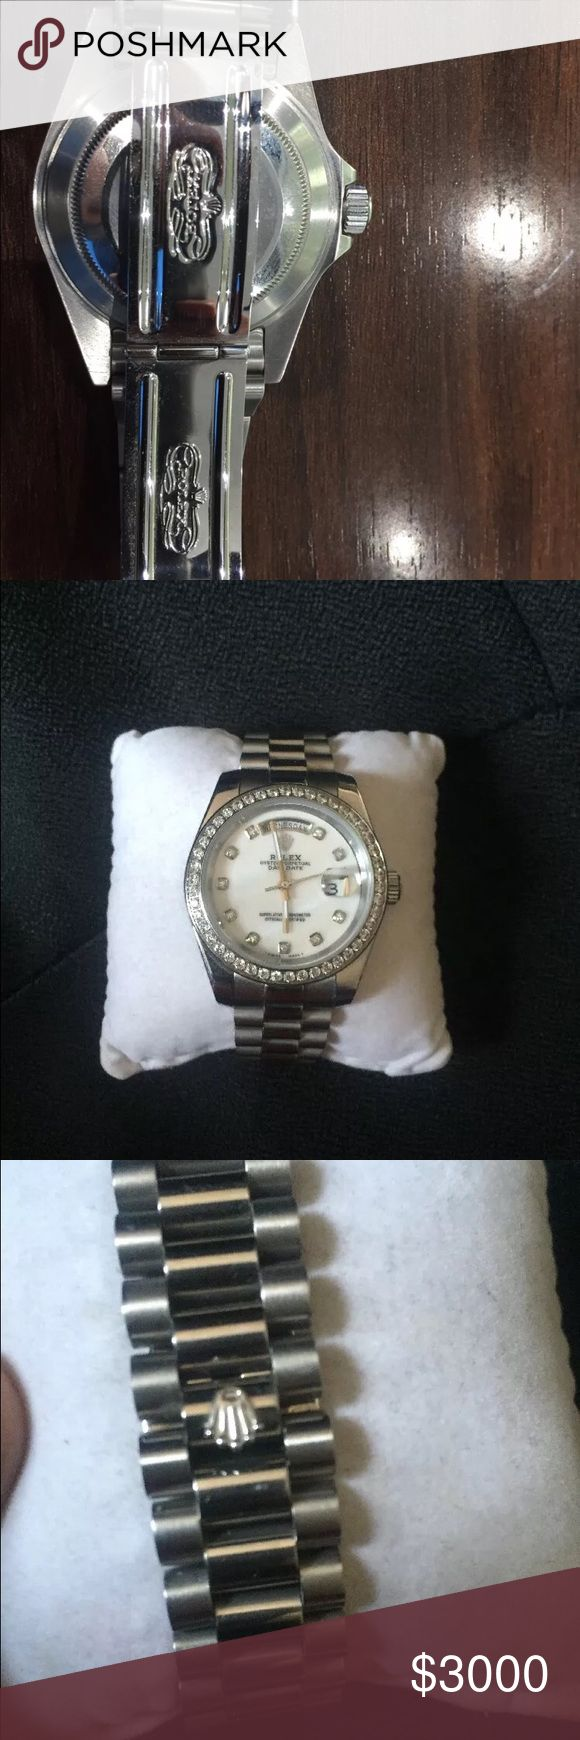 Day-date Rolex Presidential day date Rolex with diamonds in the bezel. Great gift to your self or someone else! Contact me for deals, offers negotiations 586-563-4723. 100% authentic please keep your negative comments and other things to your self Rolex Jewelry